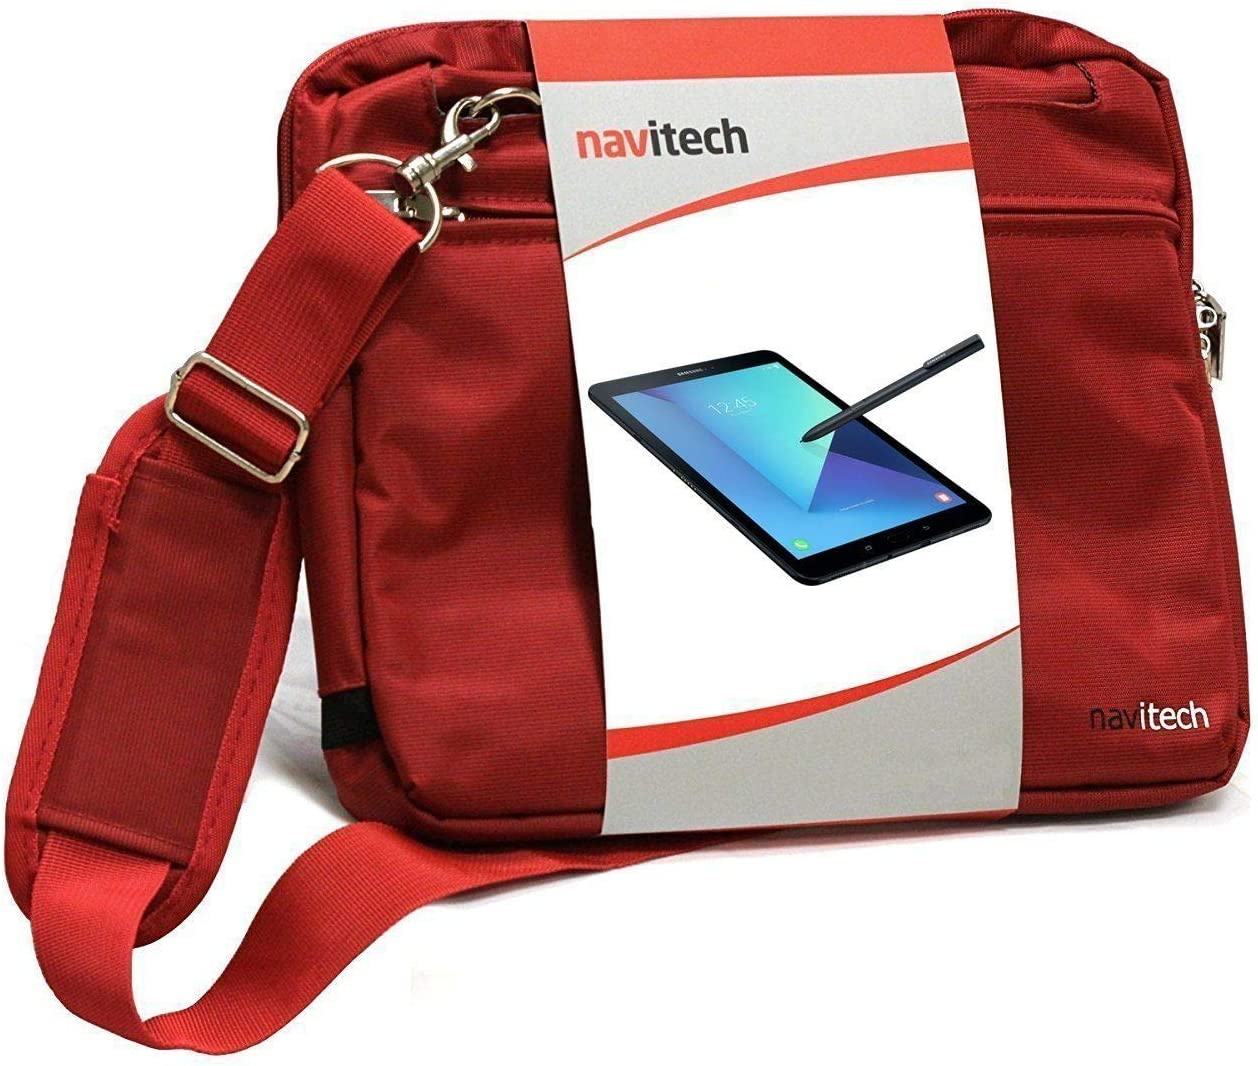 Navitech Red Sleek Premium Water Resistant Shock Absorbent Carry Bag Case Compatible with The LG G Pad F 8.0 | LG G Pad V495 | LG G Pad X 8.0 V520 | LG GPad X2 8.0 Plus V530 | LG G Pad V400